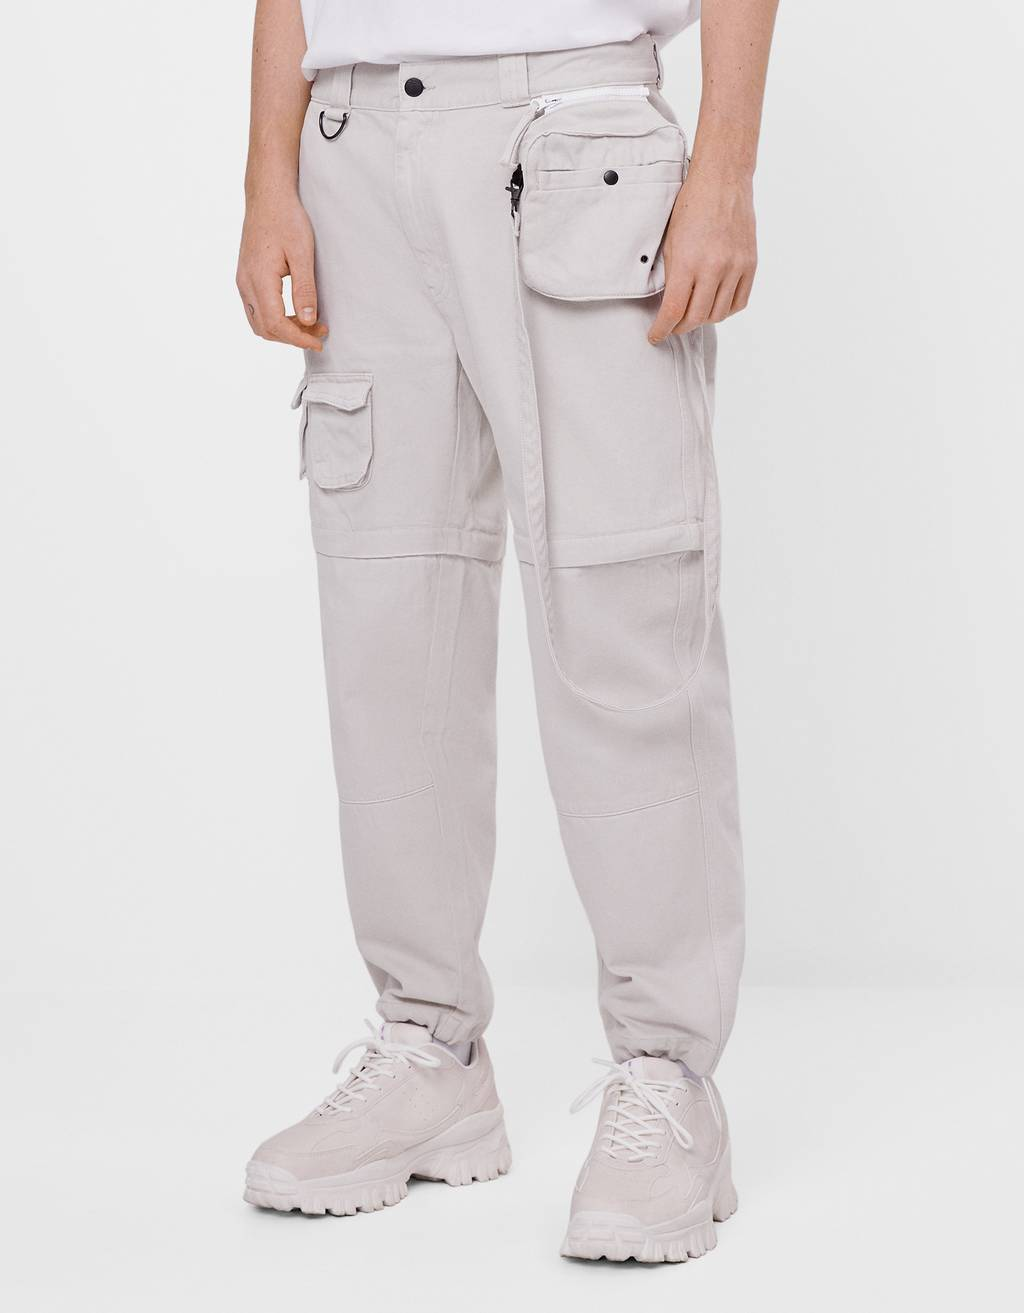 Denim trousers with detachable details